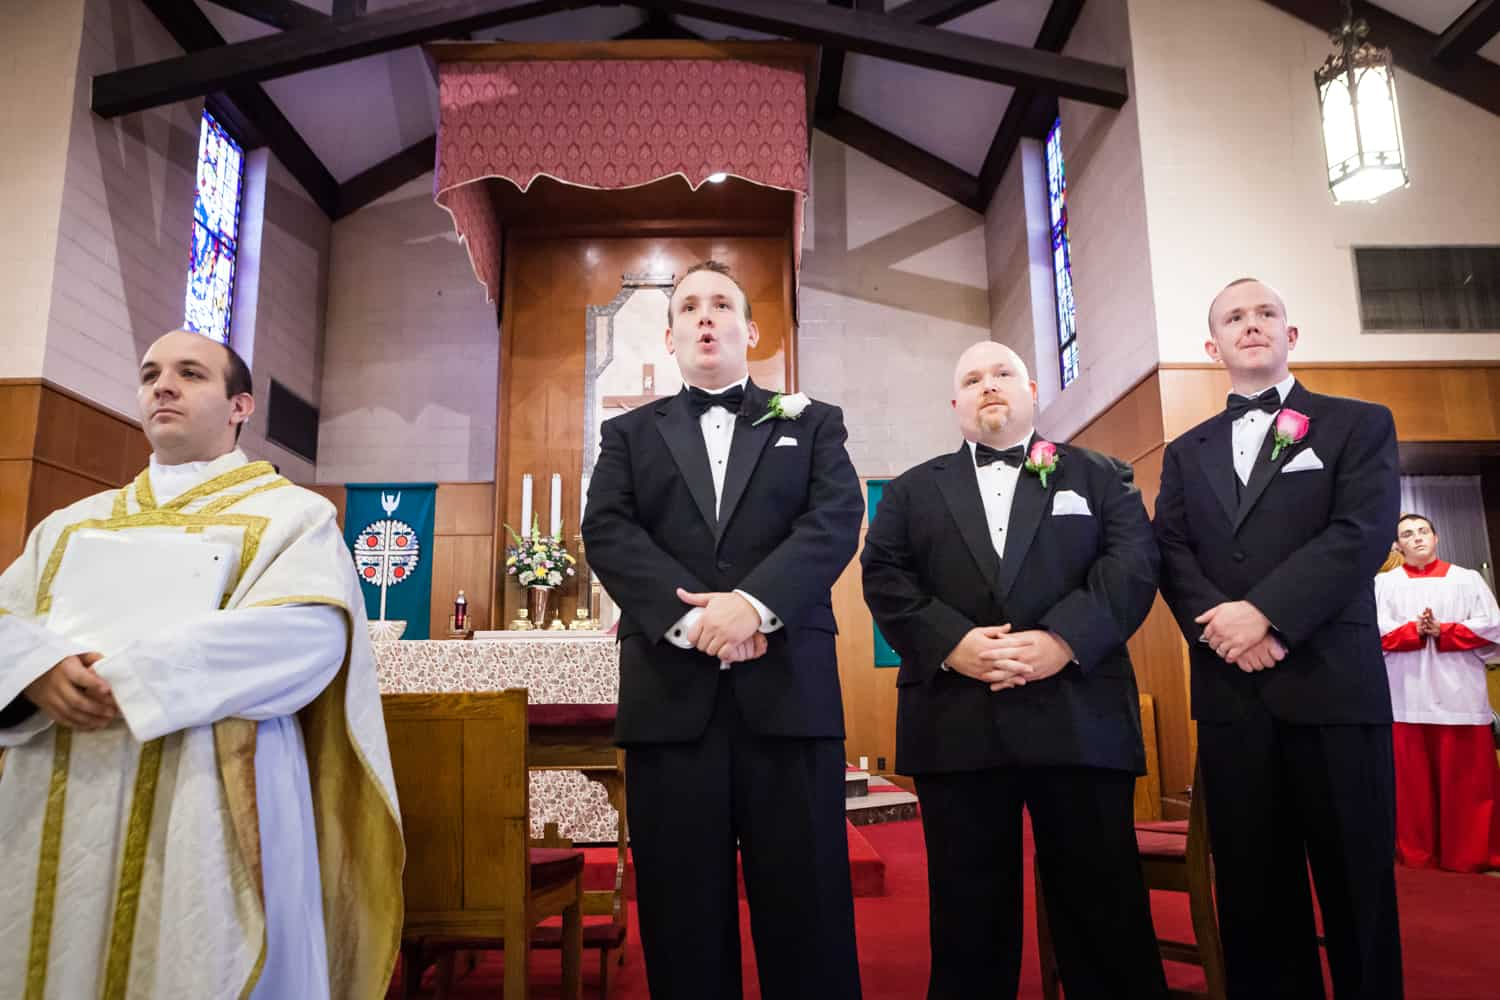 Groom and groomsmen waiting for bride to walk down the aisle